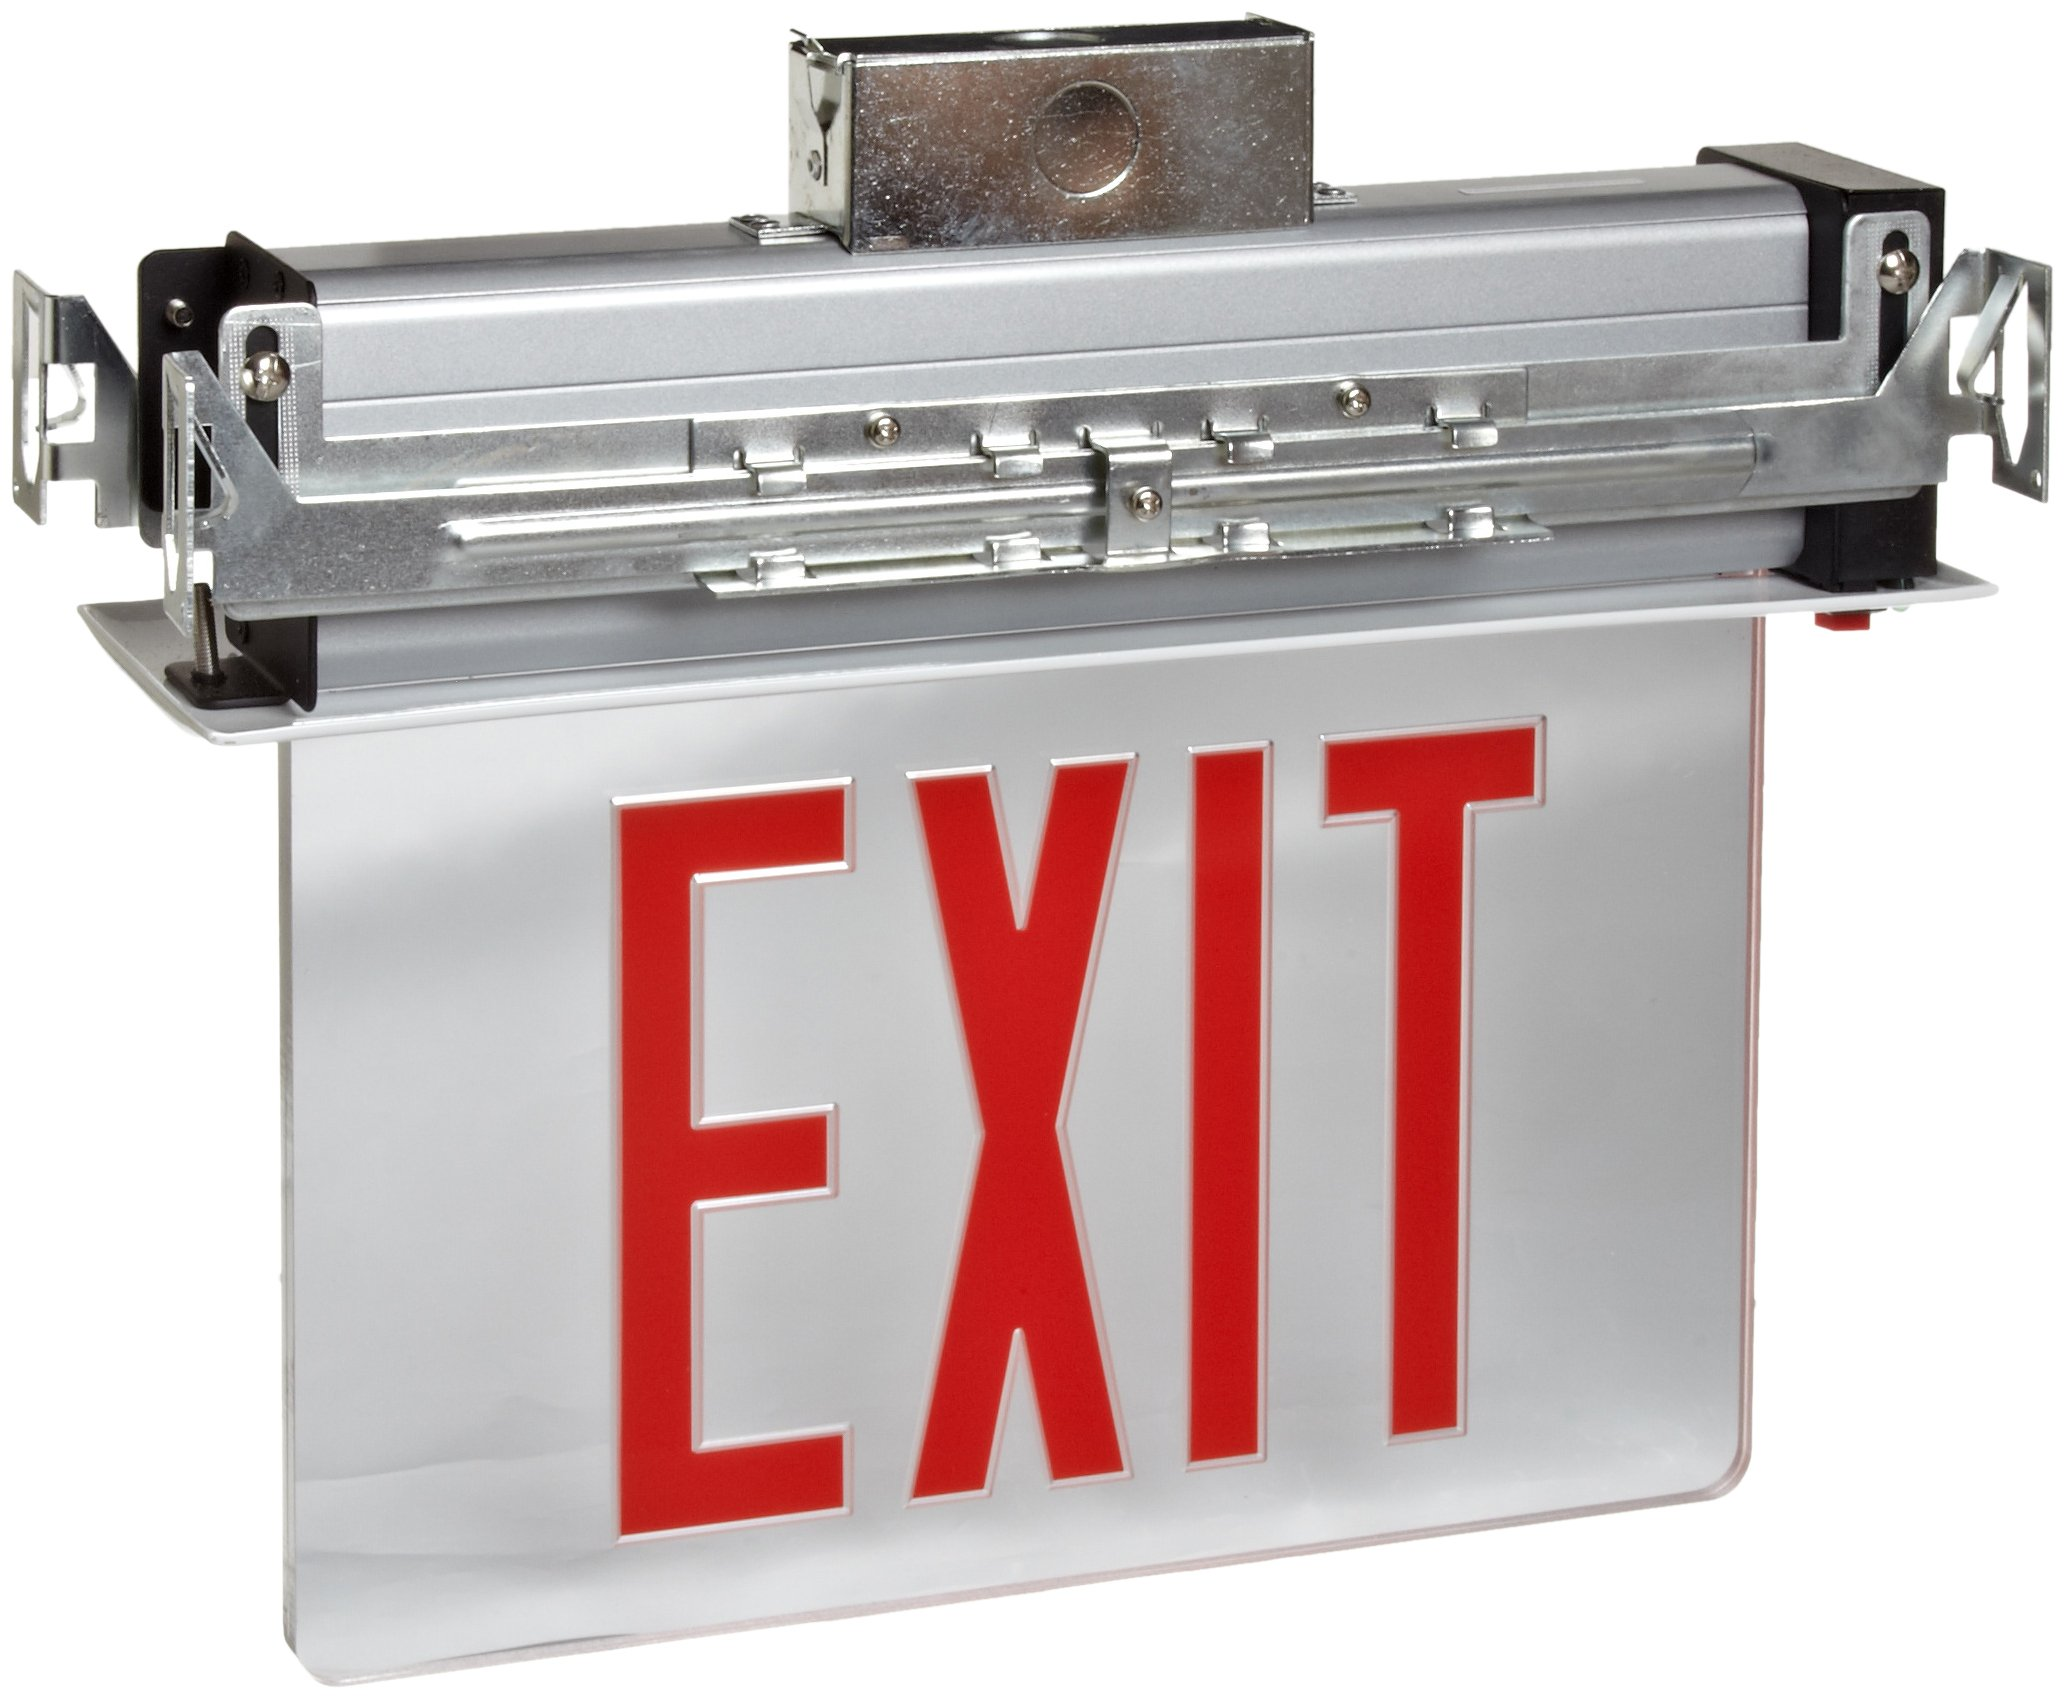 Morris Products LED Exit Sign - Recessed Mount Edge - Red on Clear Panel, White Housing - Compact, Low-Profile Design - Single Sided Legend - Energy Efficient, High Output - 1 Count